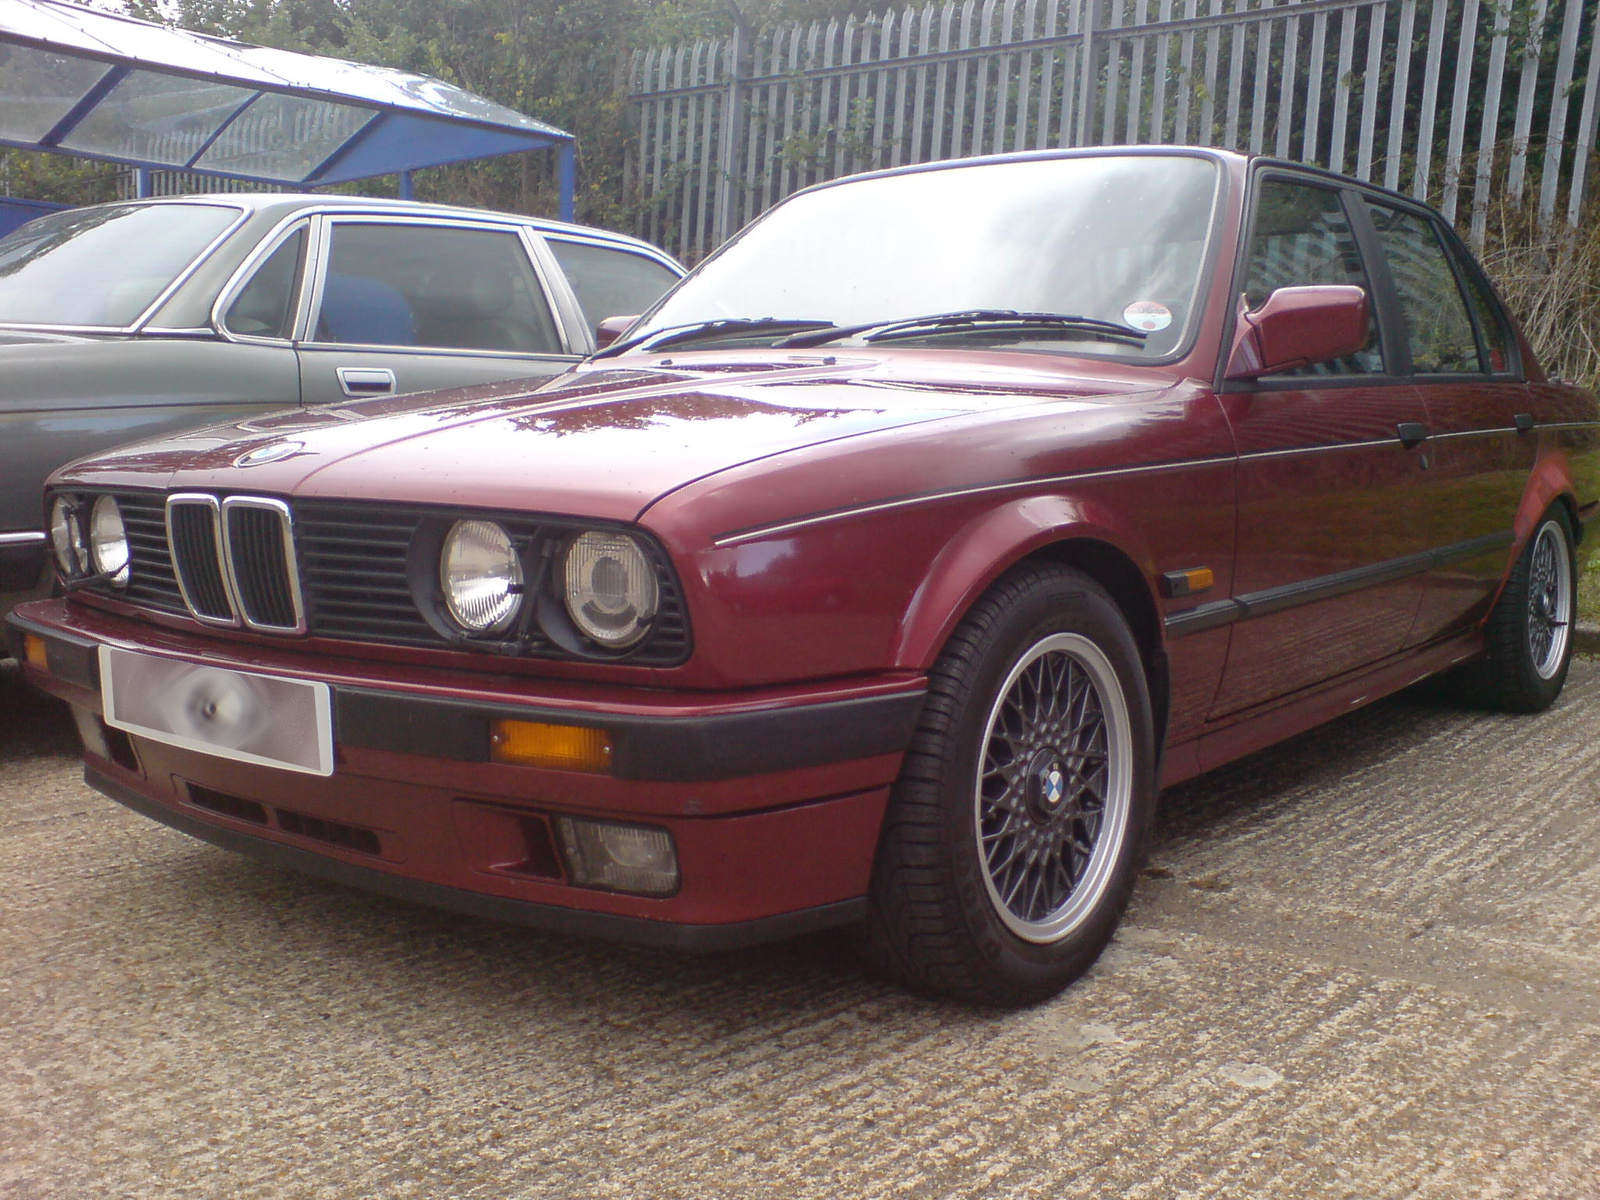 BMW 3 series 325is 1991 photo - 8